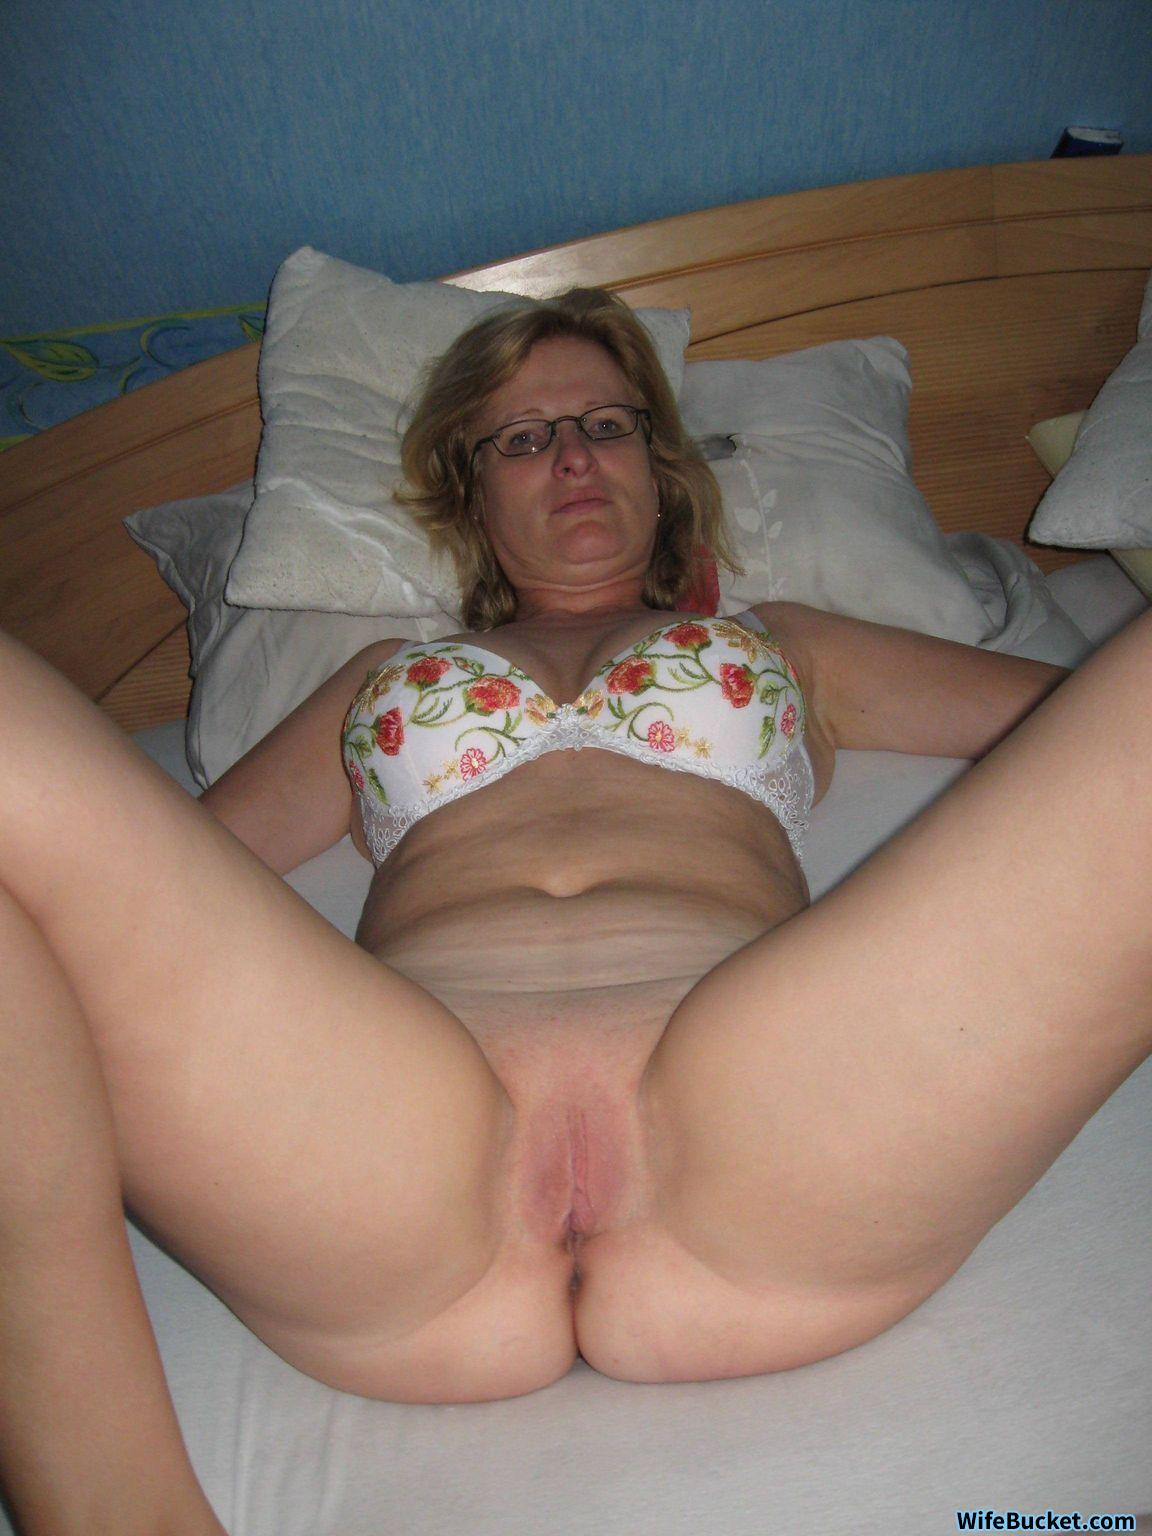 amateur pics archives | wifebucket | offical milf blog